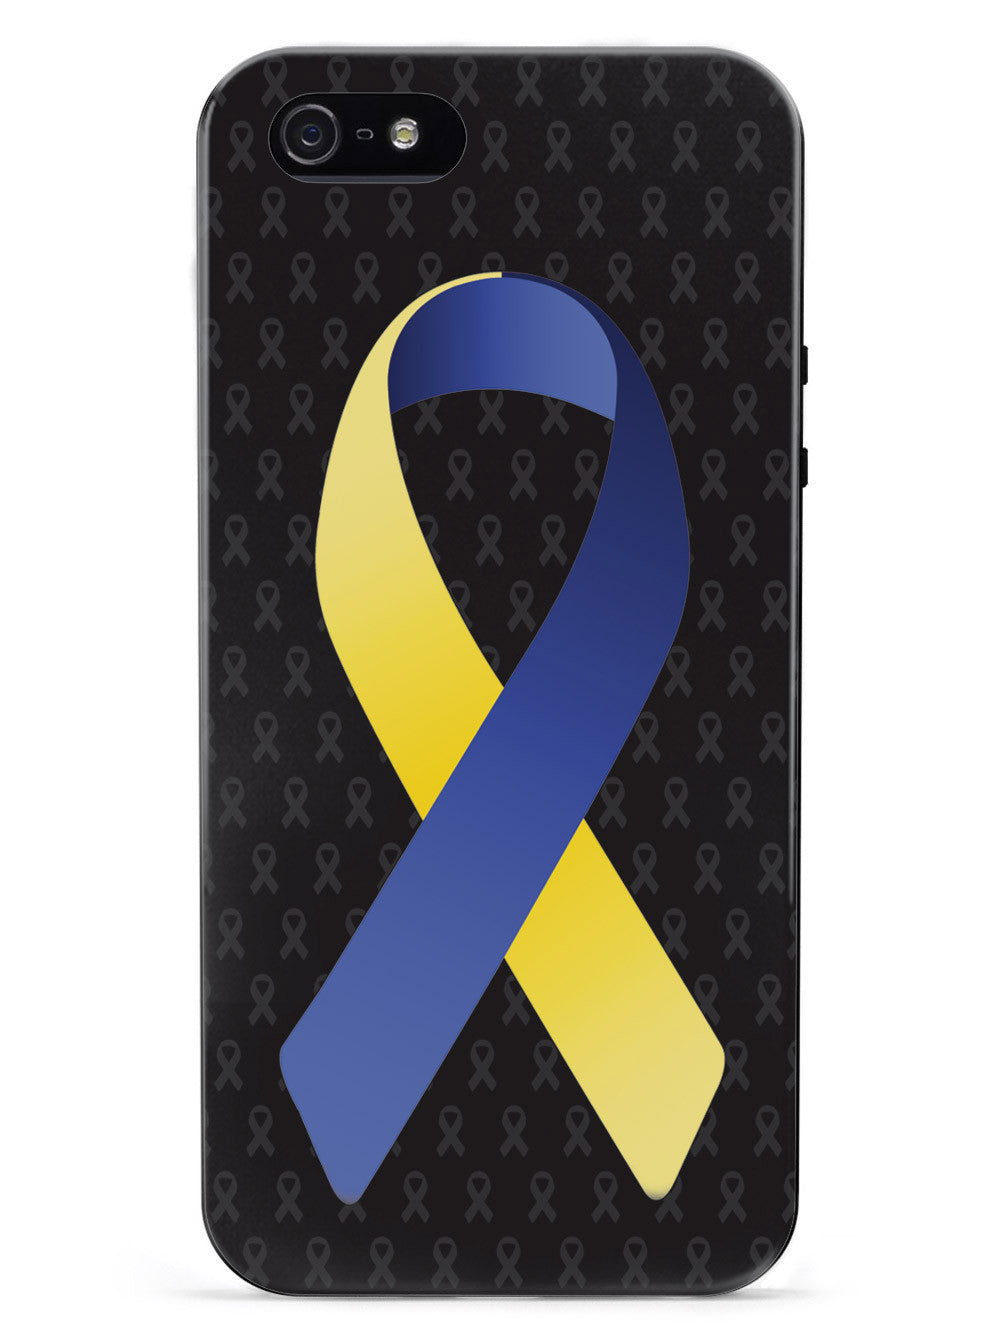 Blue and Yellow Awareness Ribbon - Black Case